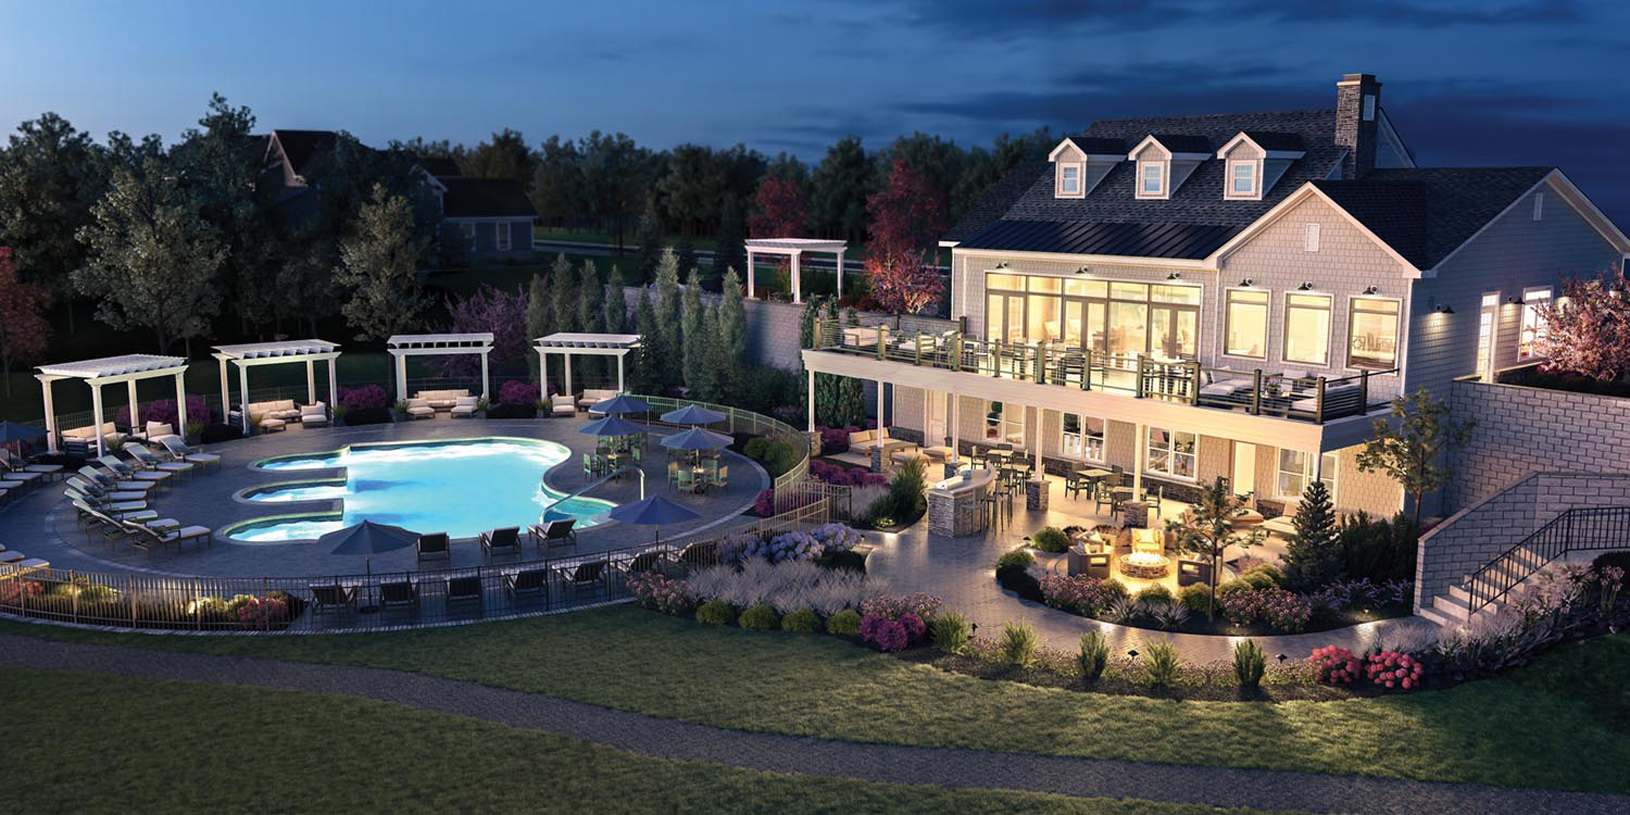 Community clubhouse and amenities